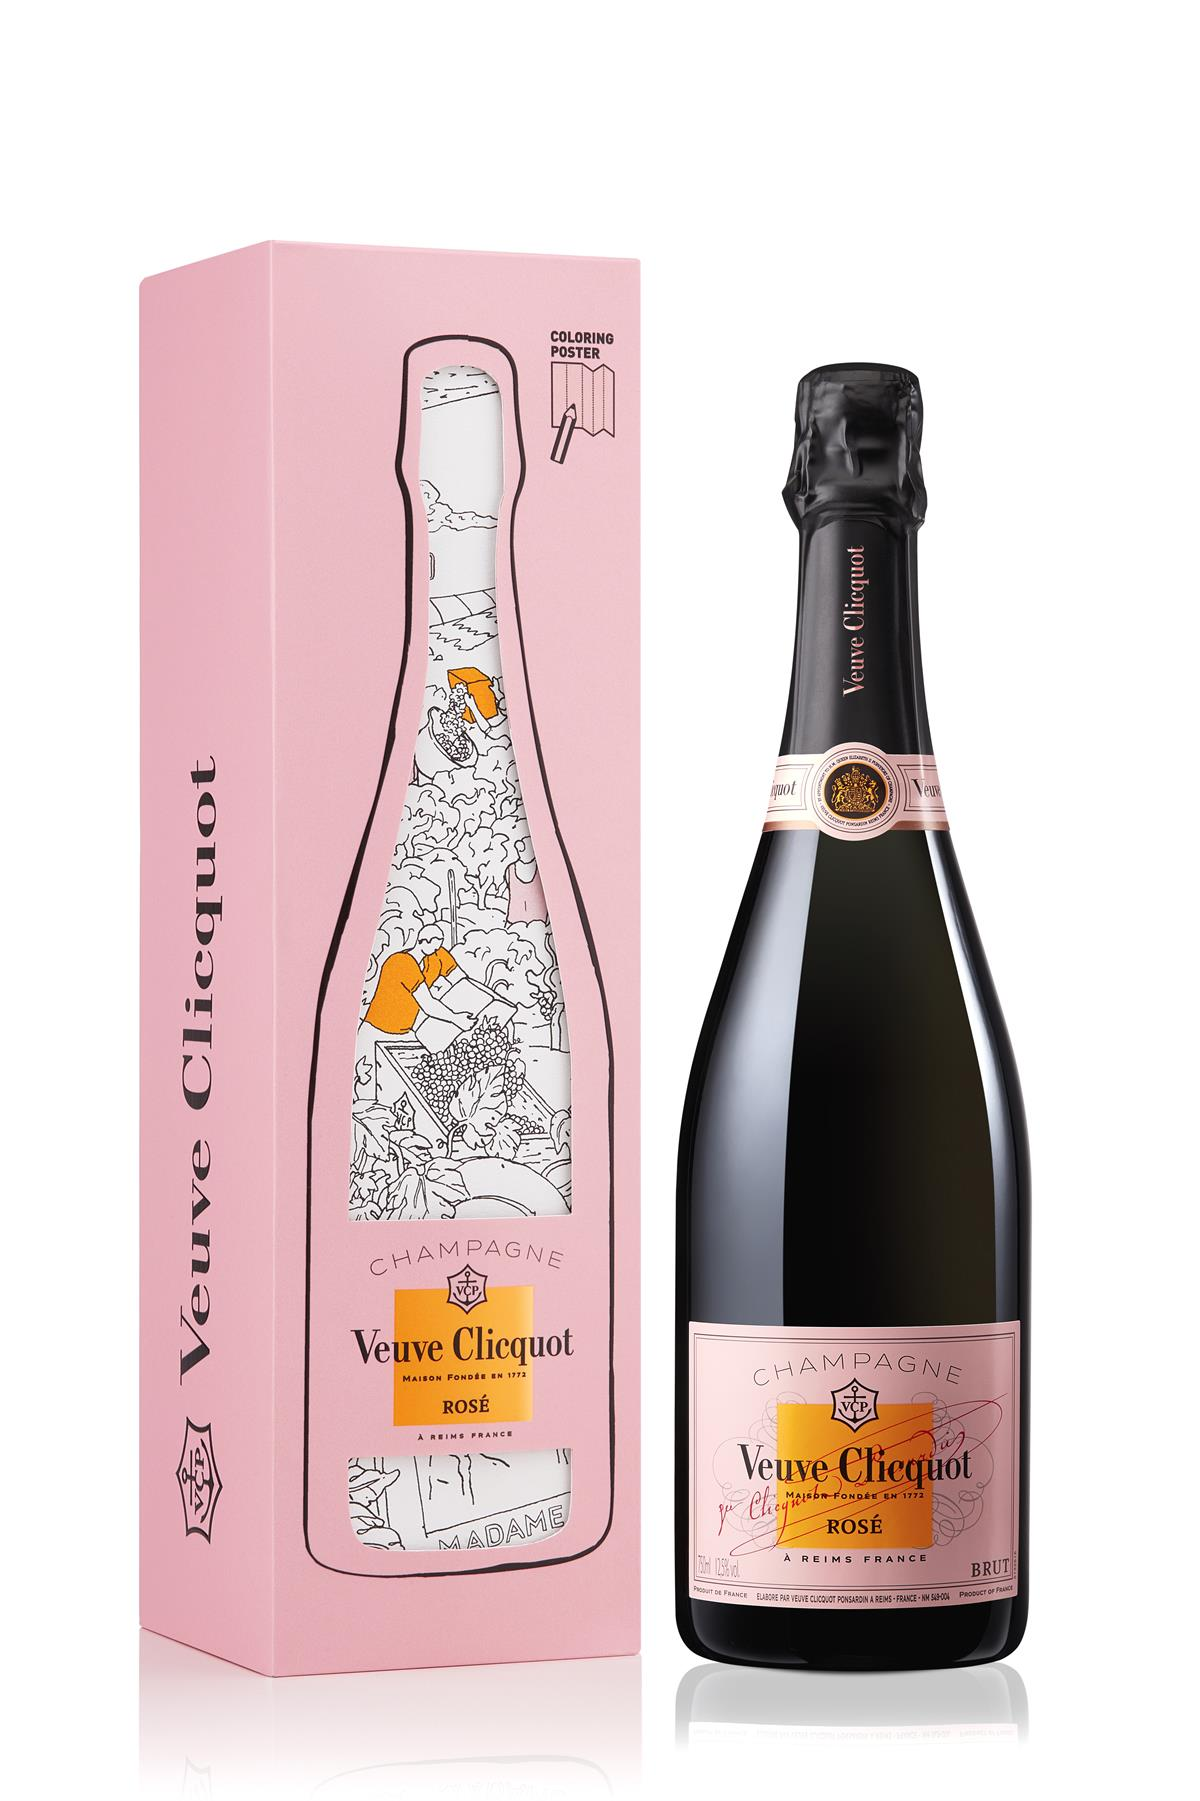 VCP-COLORAMA-ROSE-BRUT-NON-VINTAGE-COLORING-PACK-WITH-BOTTLE_EUR 69,95